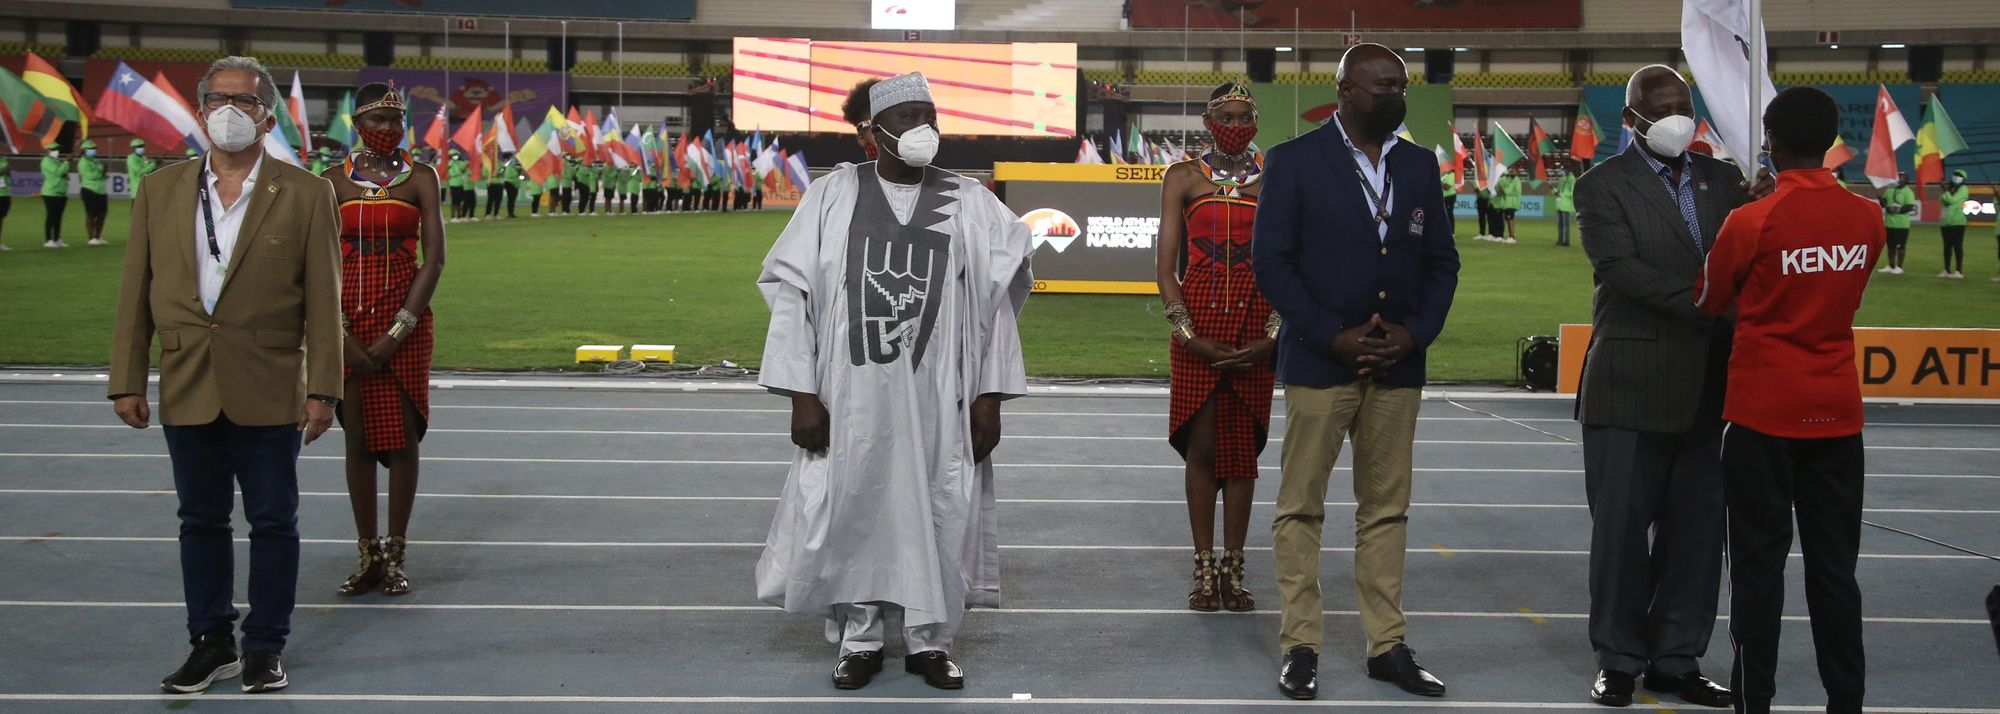 The World Athletics U20 Championships in Nairobi have earned their place in the history books with four world U20 records, 15 championship records, 11 area U20 records, 68 national U20 records and 10 national senior records.